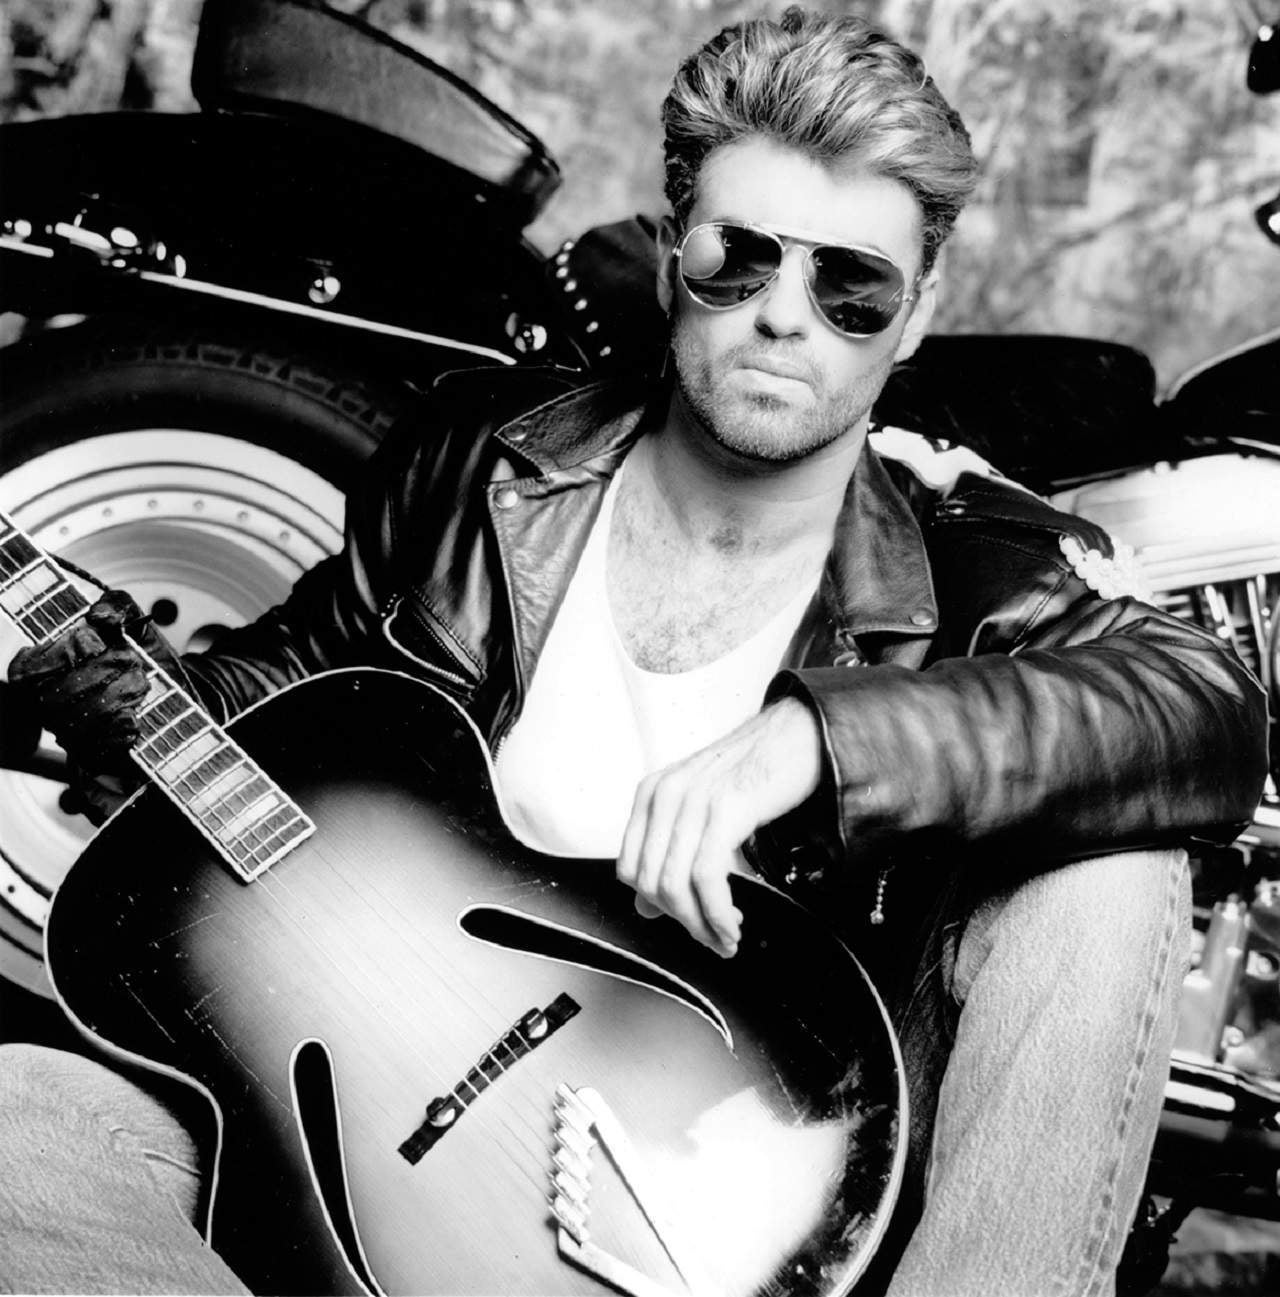 George Michael's Freedom: if only the film had more depth and grit